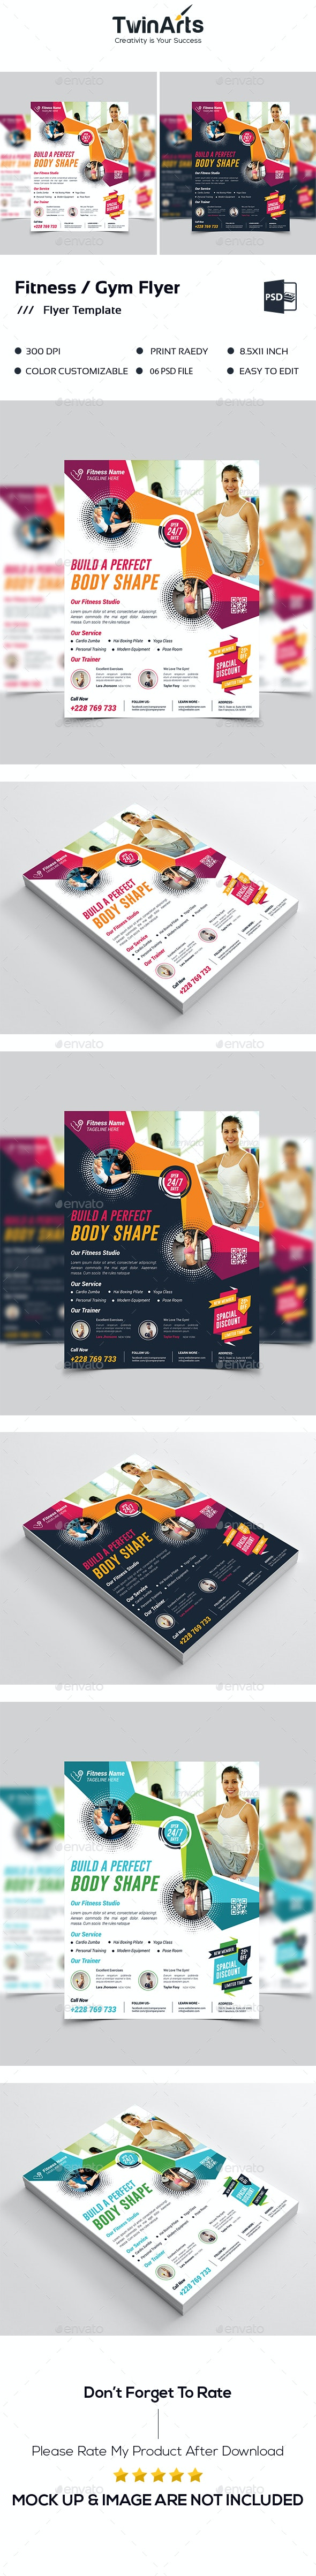 Fitness Flyer / Gym Flyer - Flyers Print Templates